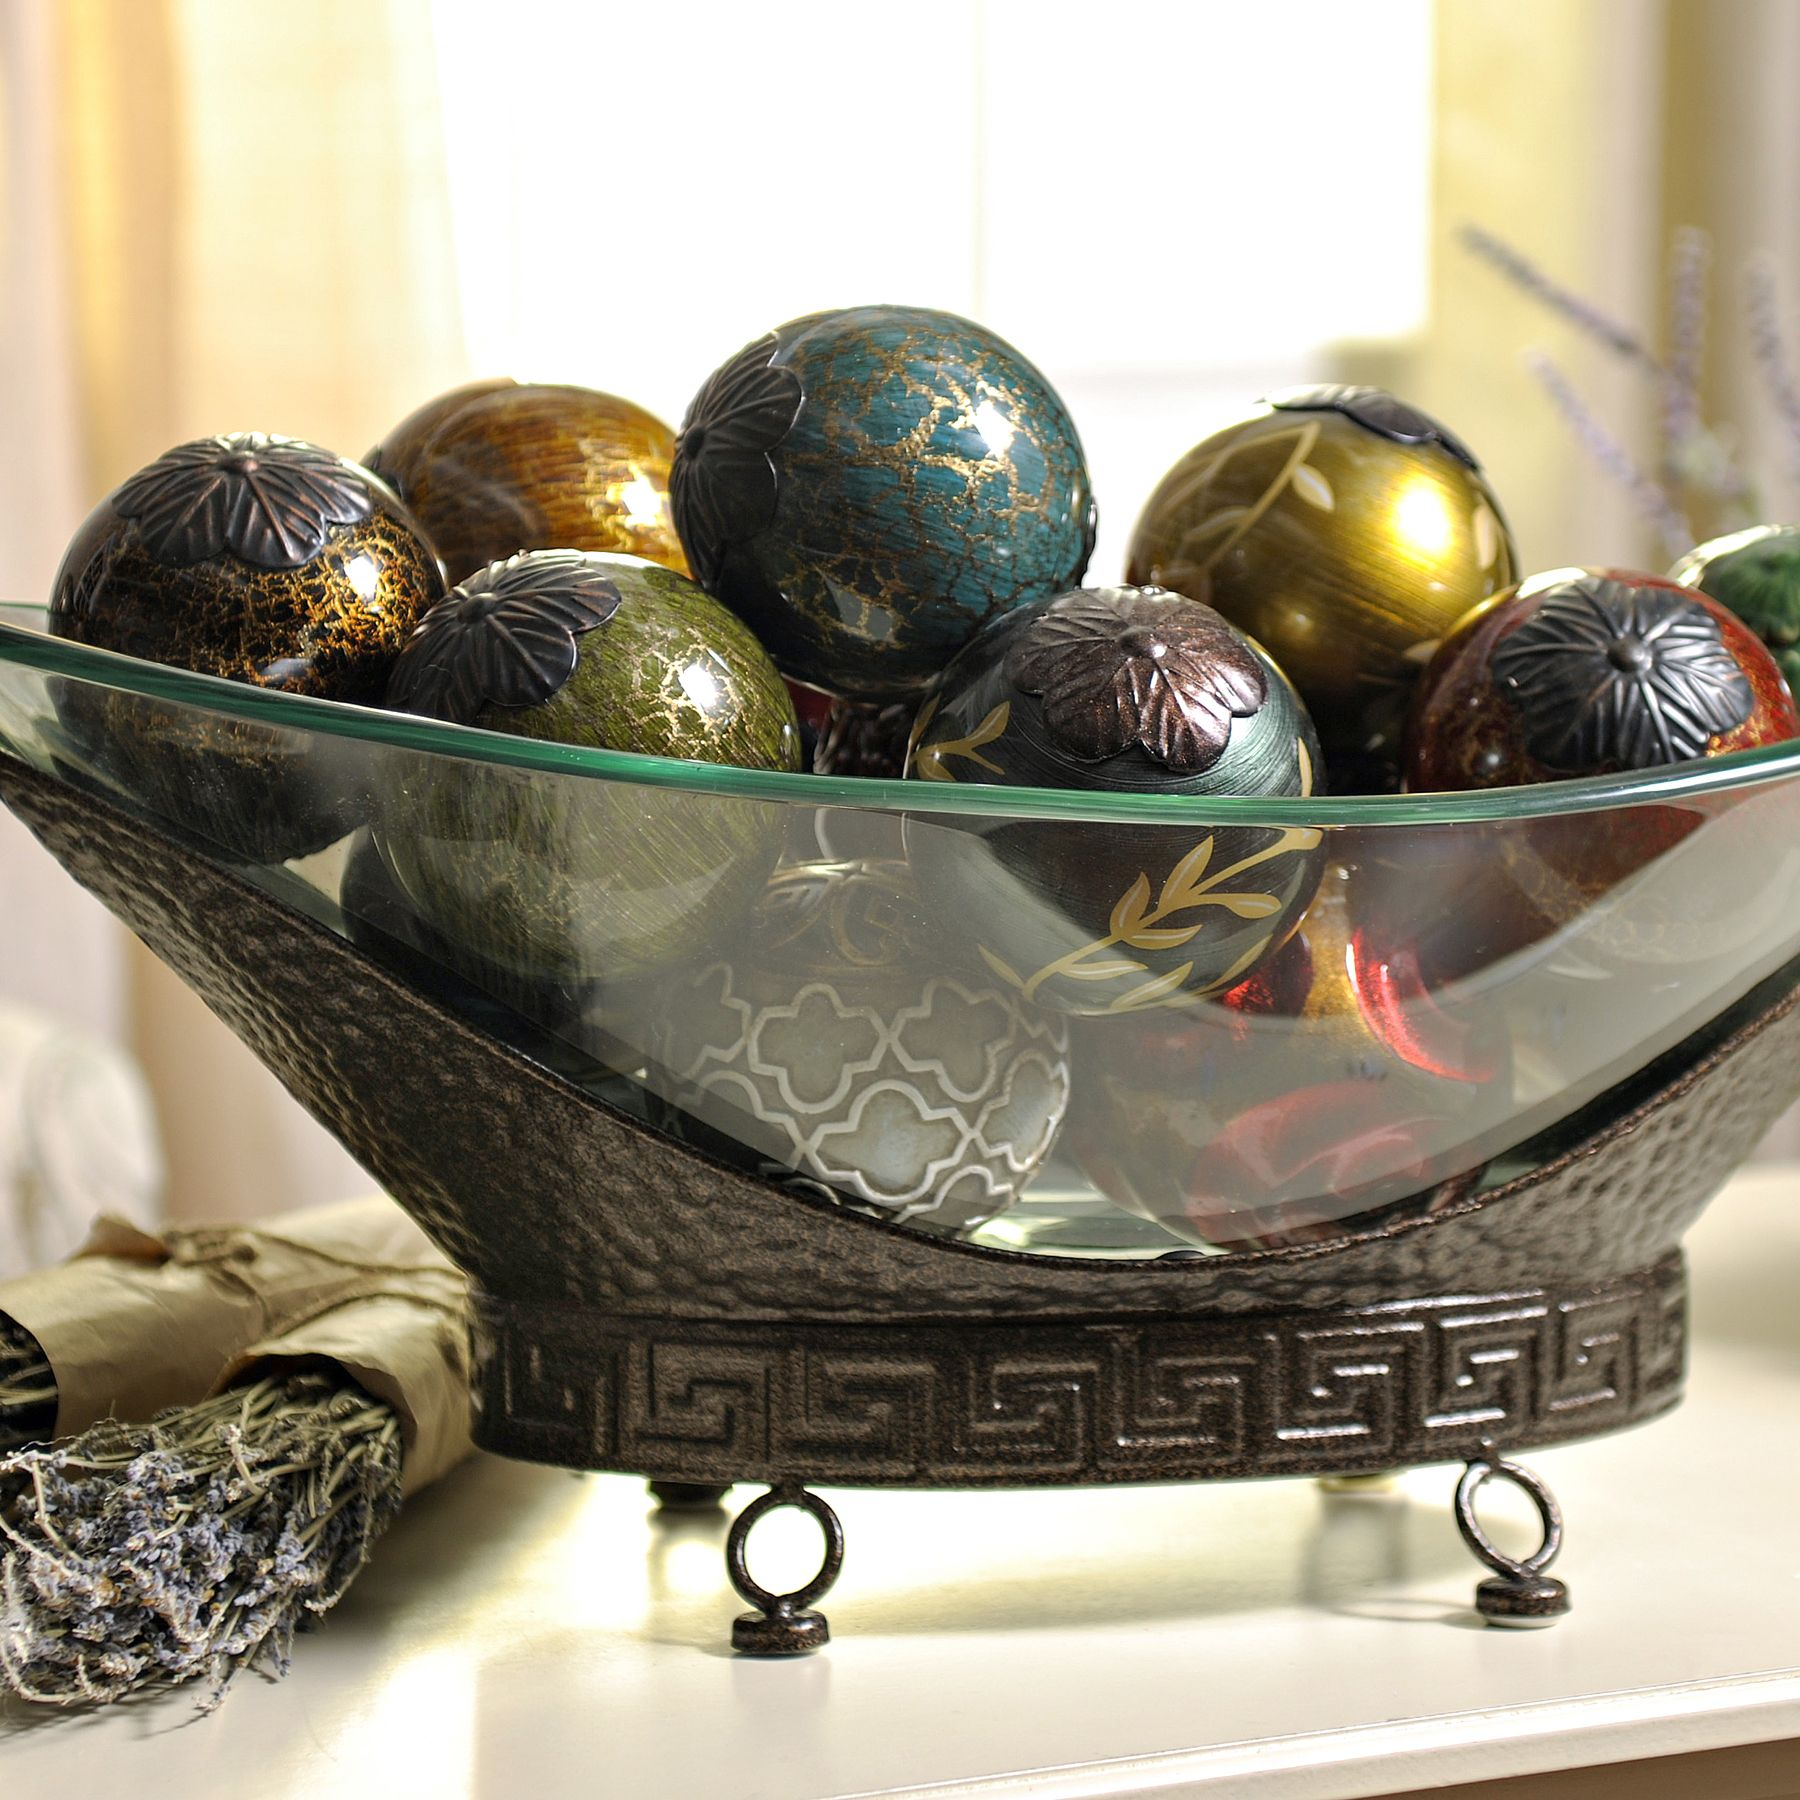 Timeless And Chic Our Oversized Bronze Bowl Is The Perfect Centerpiece For Any Tab Decorative Bowl Centerpiece Glass Bowl Centerpieces Dining Room Centerpiece